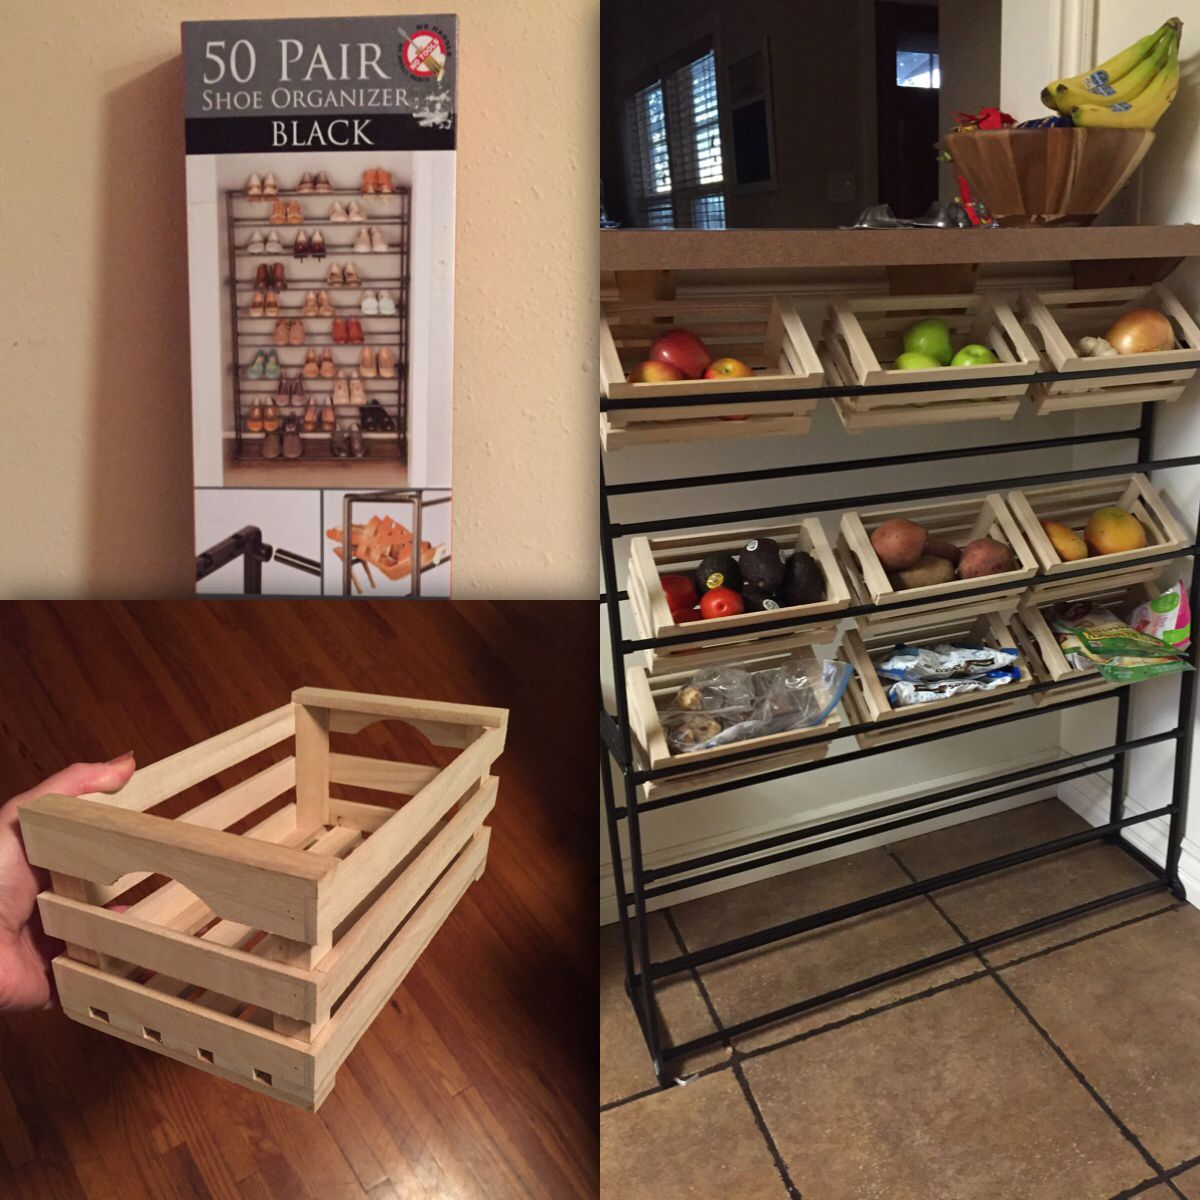 Shoe Organization Hacks: Kitchen/storage Hack: Shoe Rack + Mini Crates From Daiso